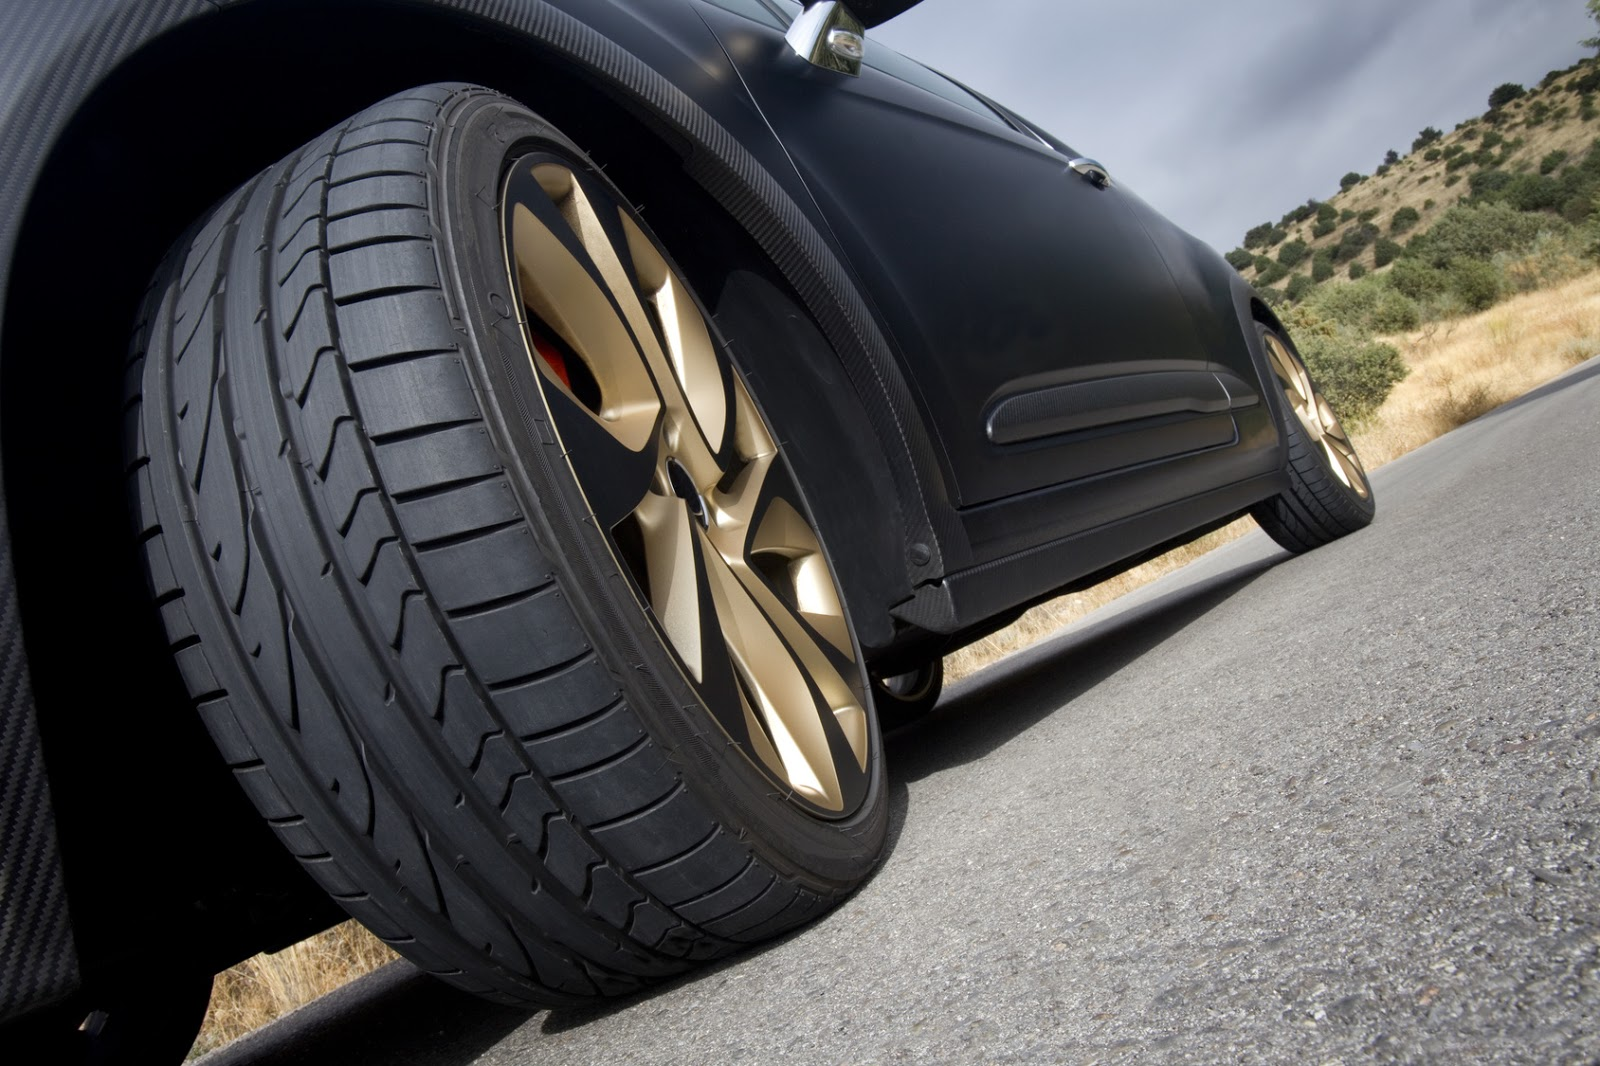 Atlanta Best Used Cars: Tire Safety: Check Your Tires For